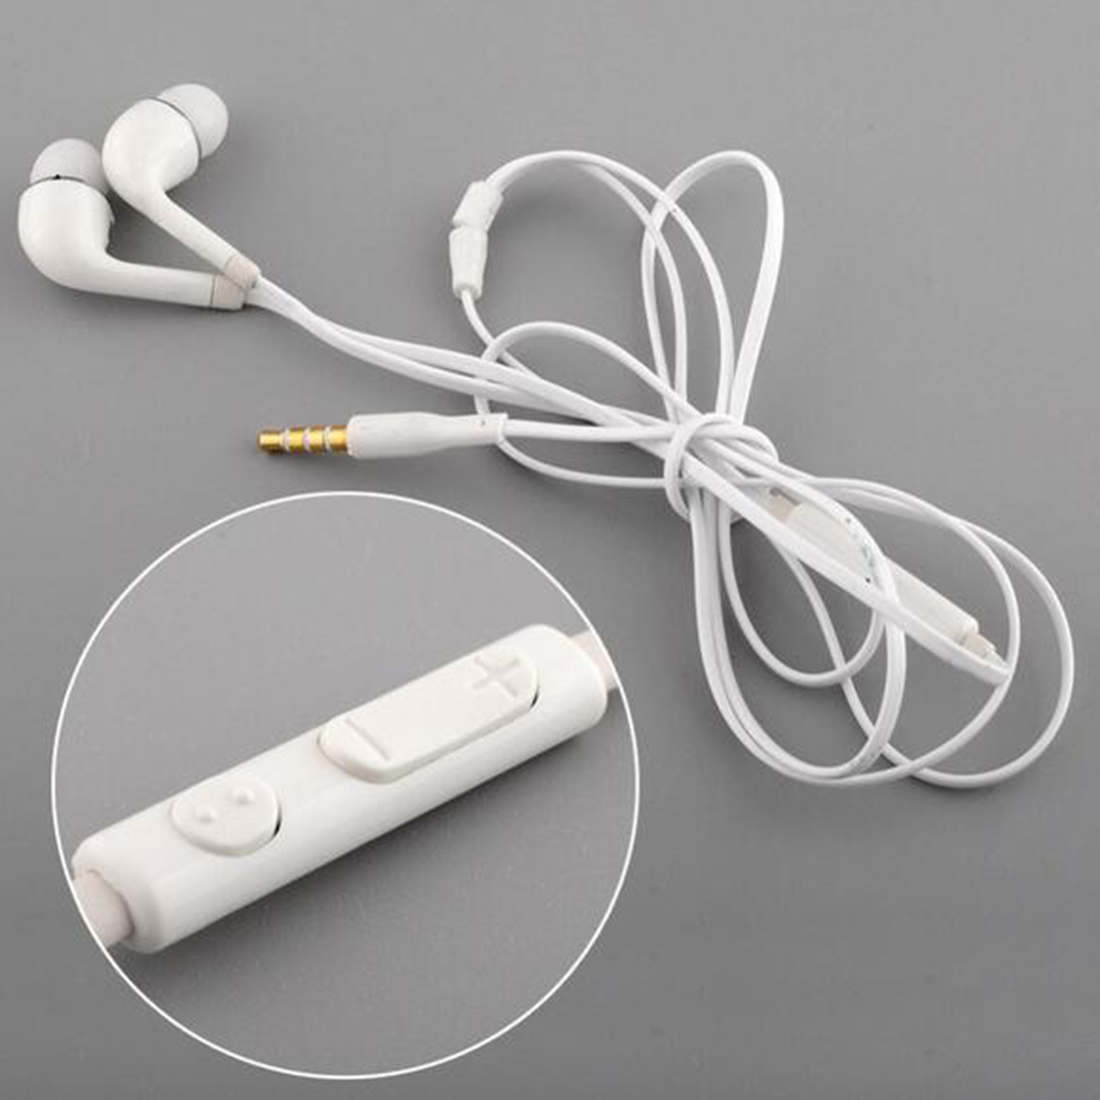 In-Ear Earphone With Mic Wired Control In Ear Earphone Phone Earphones For Samsung Galaxy S4 S3 S2 S5 s6 s7 Note 2 in ear earphone with mic wired control in ear earphone phone earphones for samsung galaxy s4 s3 s2 s5 s6 s7 note 2